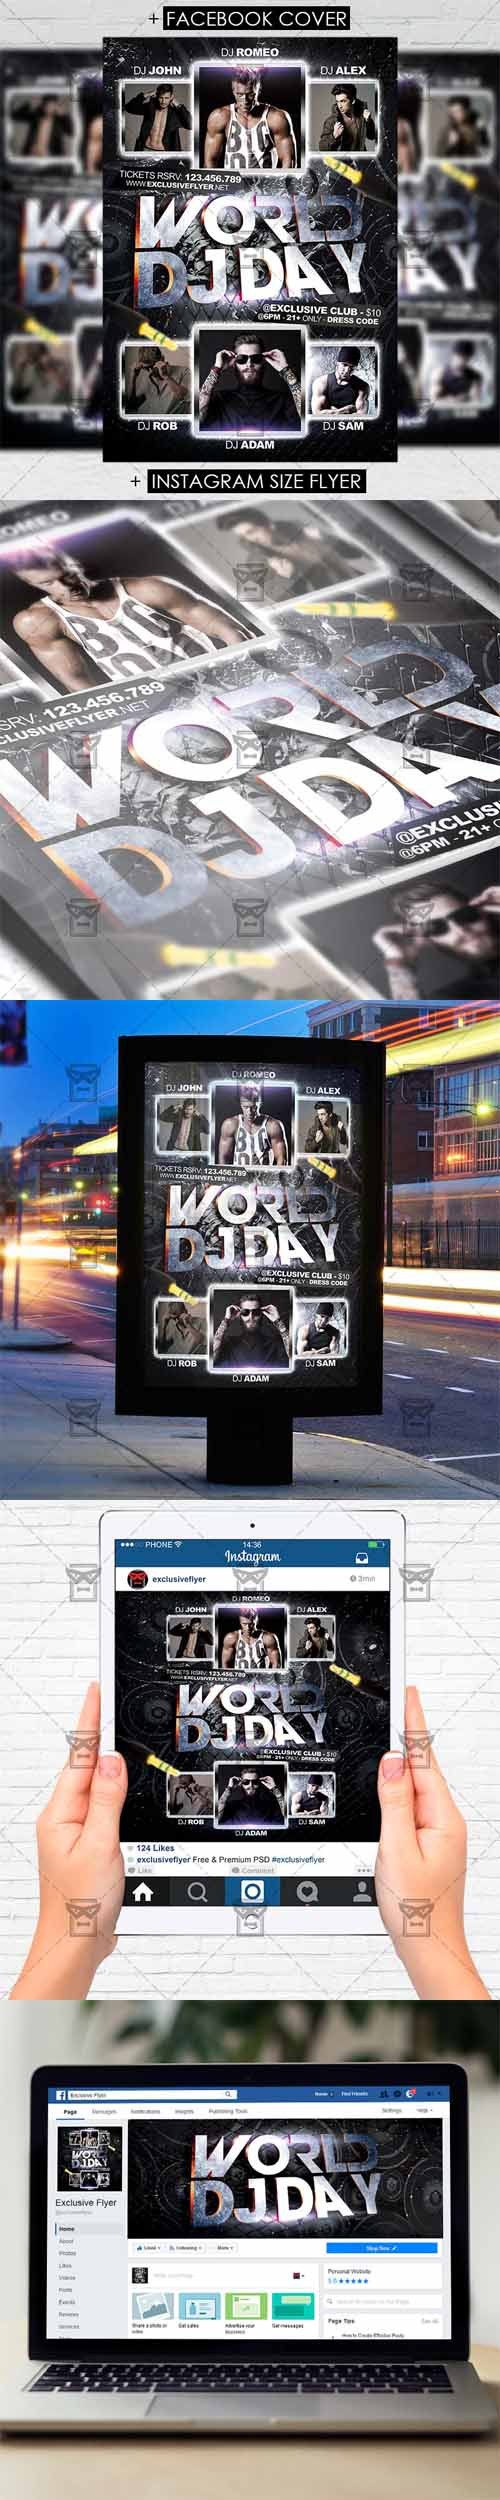 Flyer Template - World DJ Day